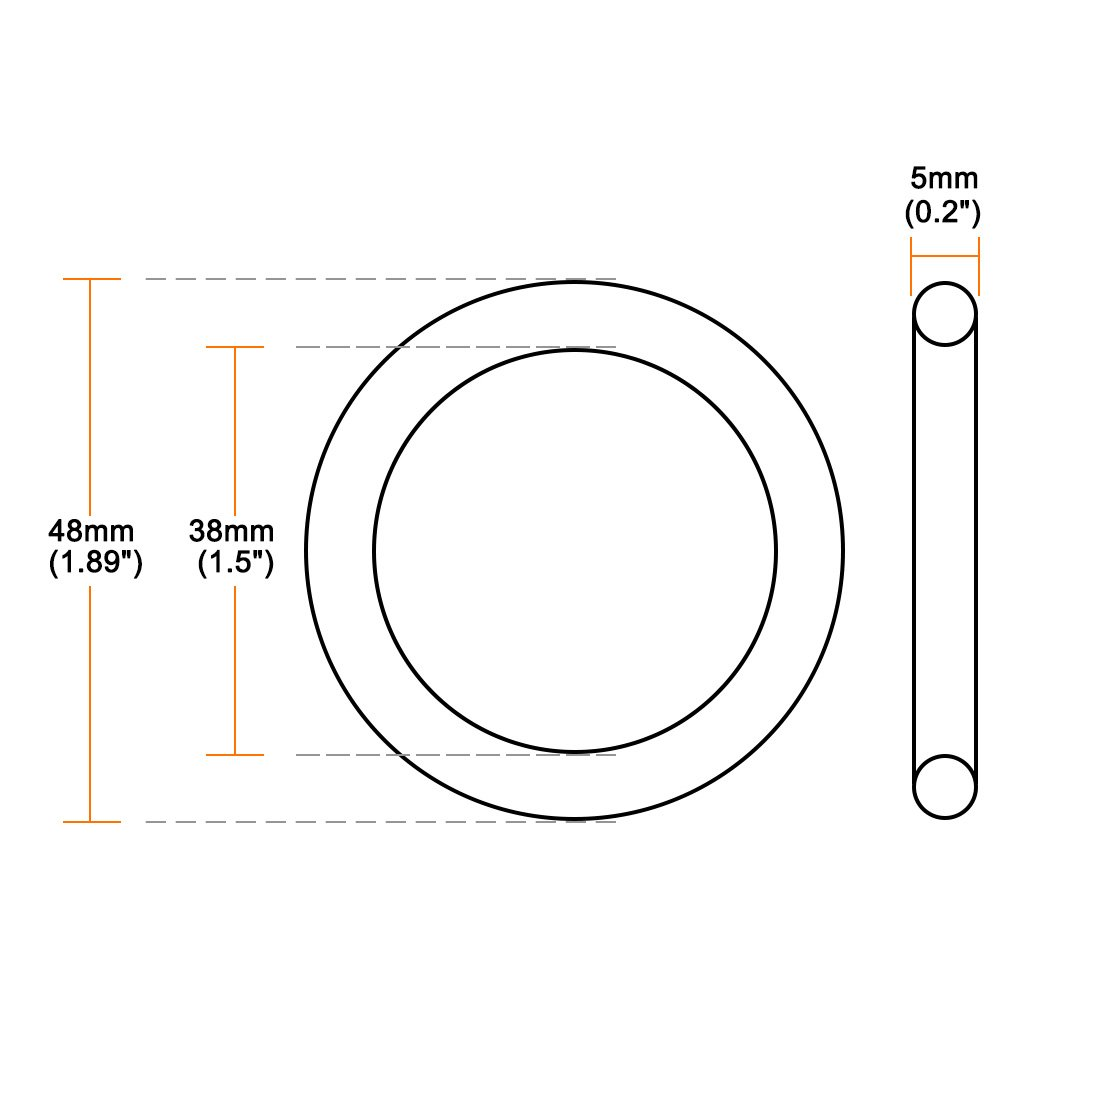 uxcell O-Rings Nitrile Rubber 38mm Inner Diameter Round Seal Gasket 5mm Width Pack of 10 48mm OD